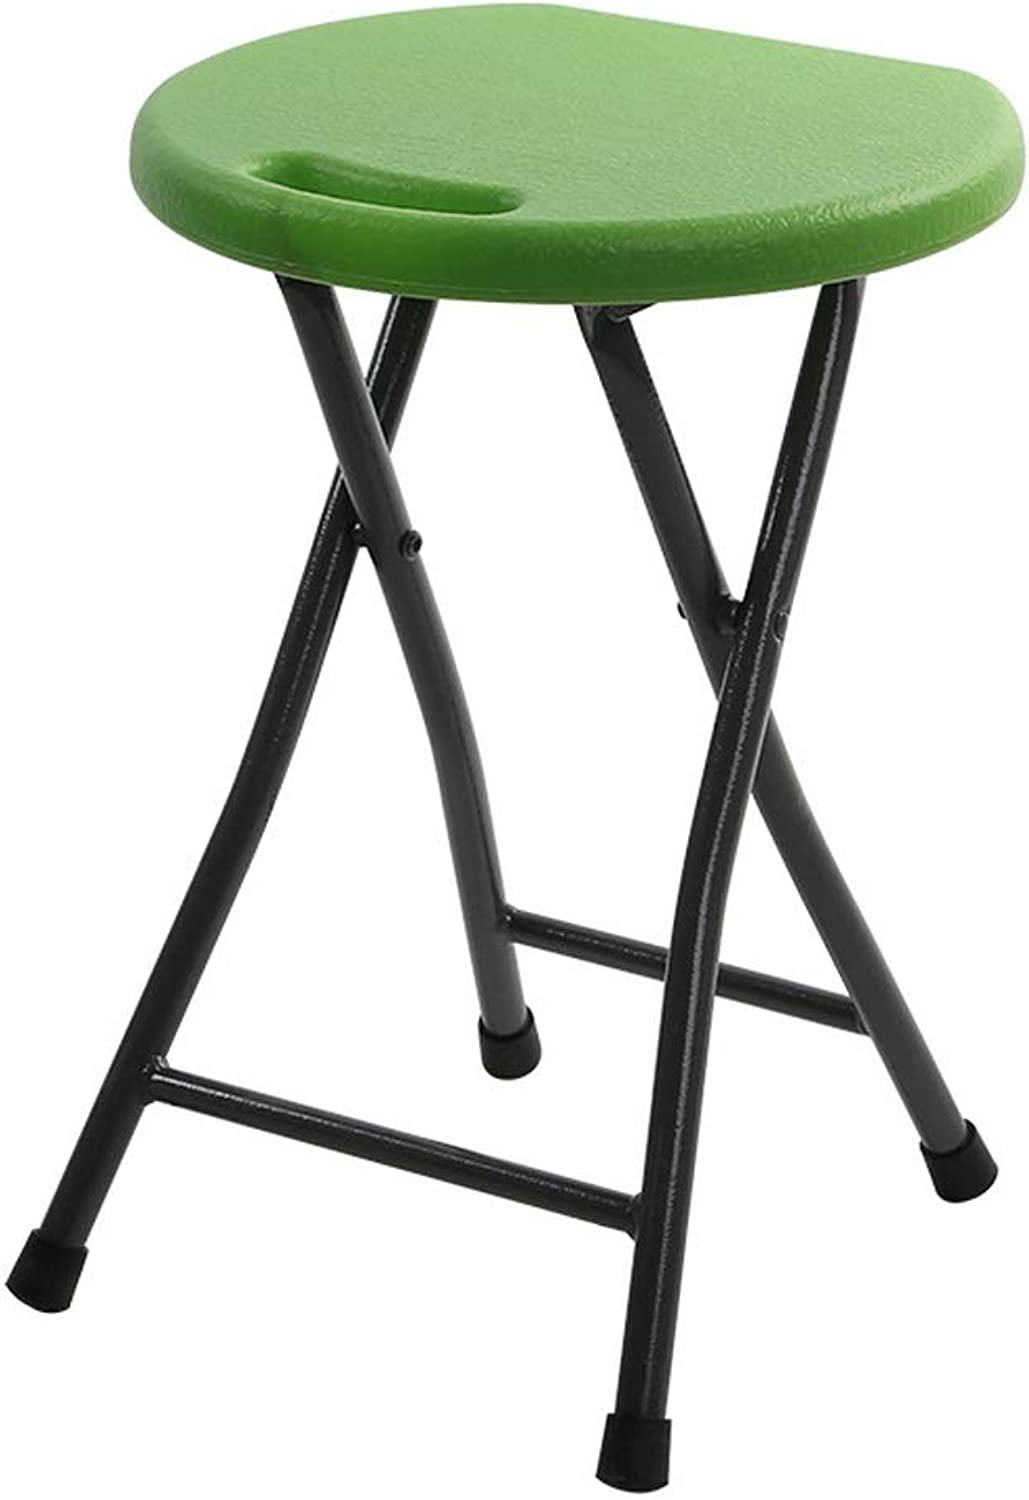 Grass Green Portable Folding Round Shower Stool Elderly Disabled Pregnant Women Home Simple Stool